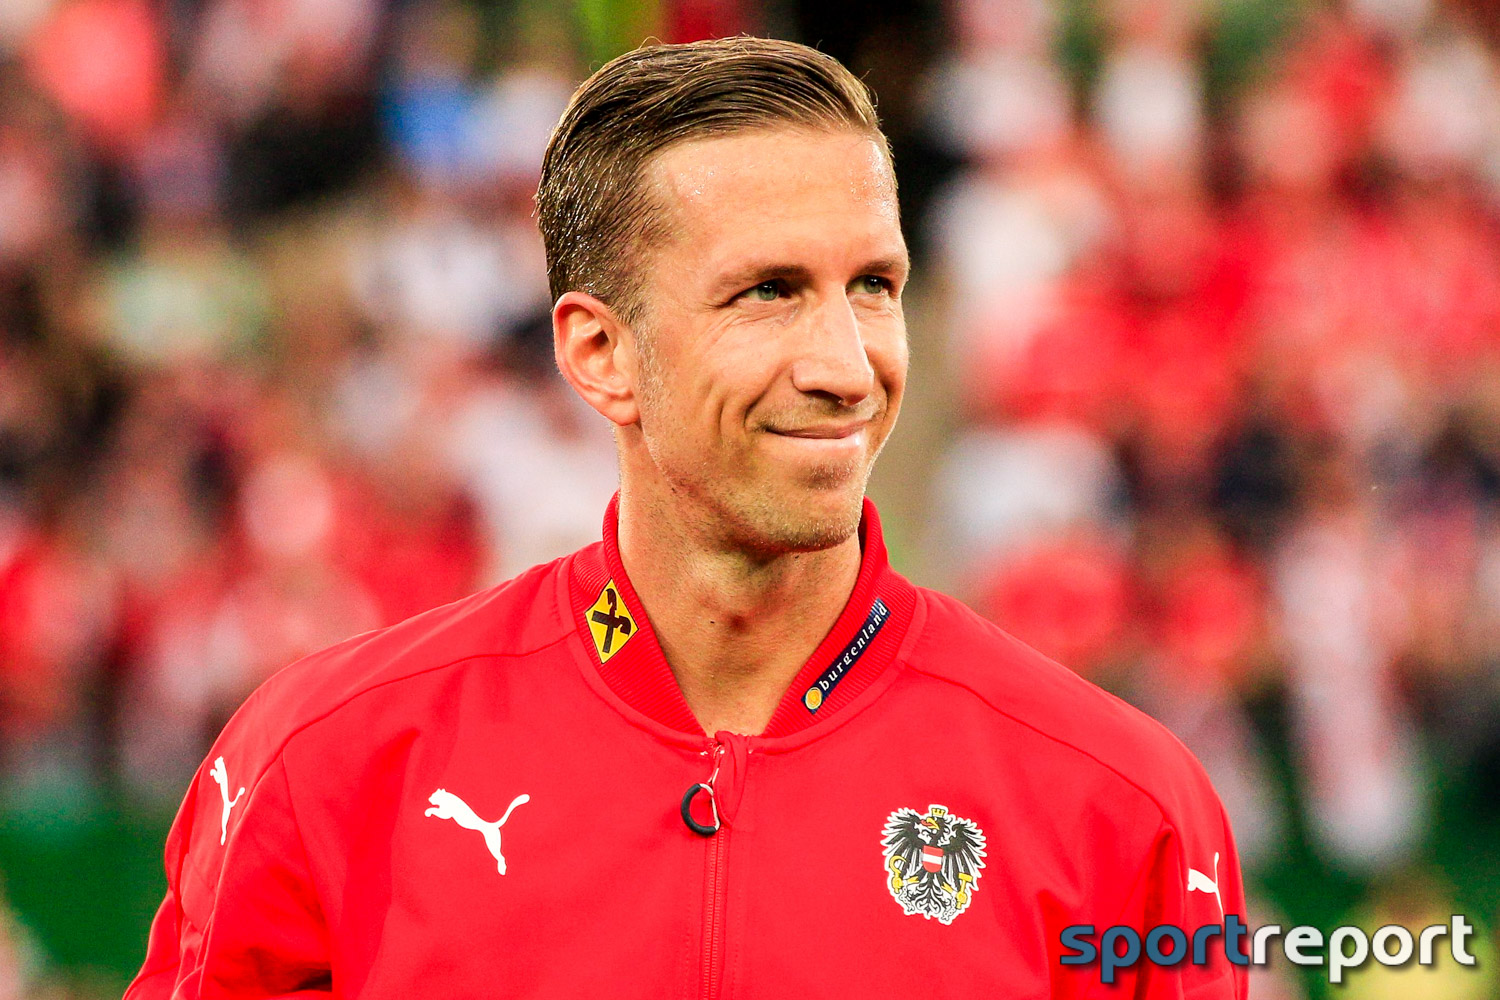 Fußball, ÖFB, Nationalteam, Marc Janko, Janko, Angina, WM-Qualifikation, Irland, Deni Alar